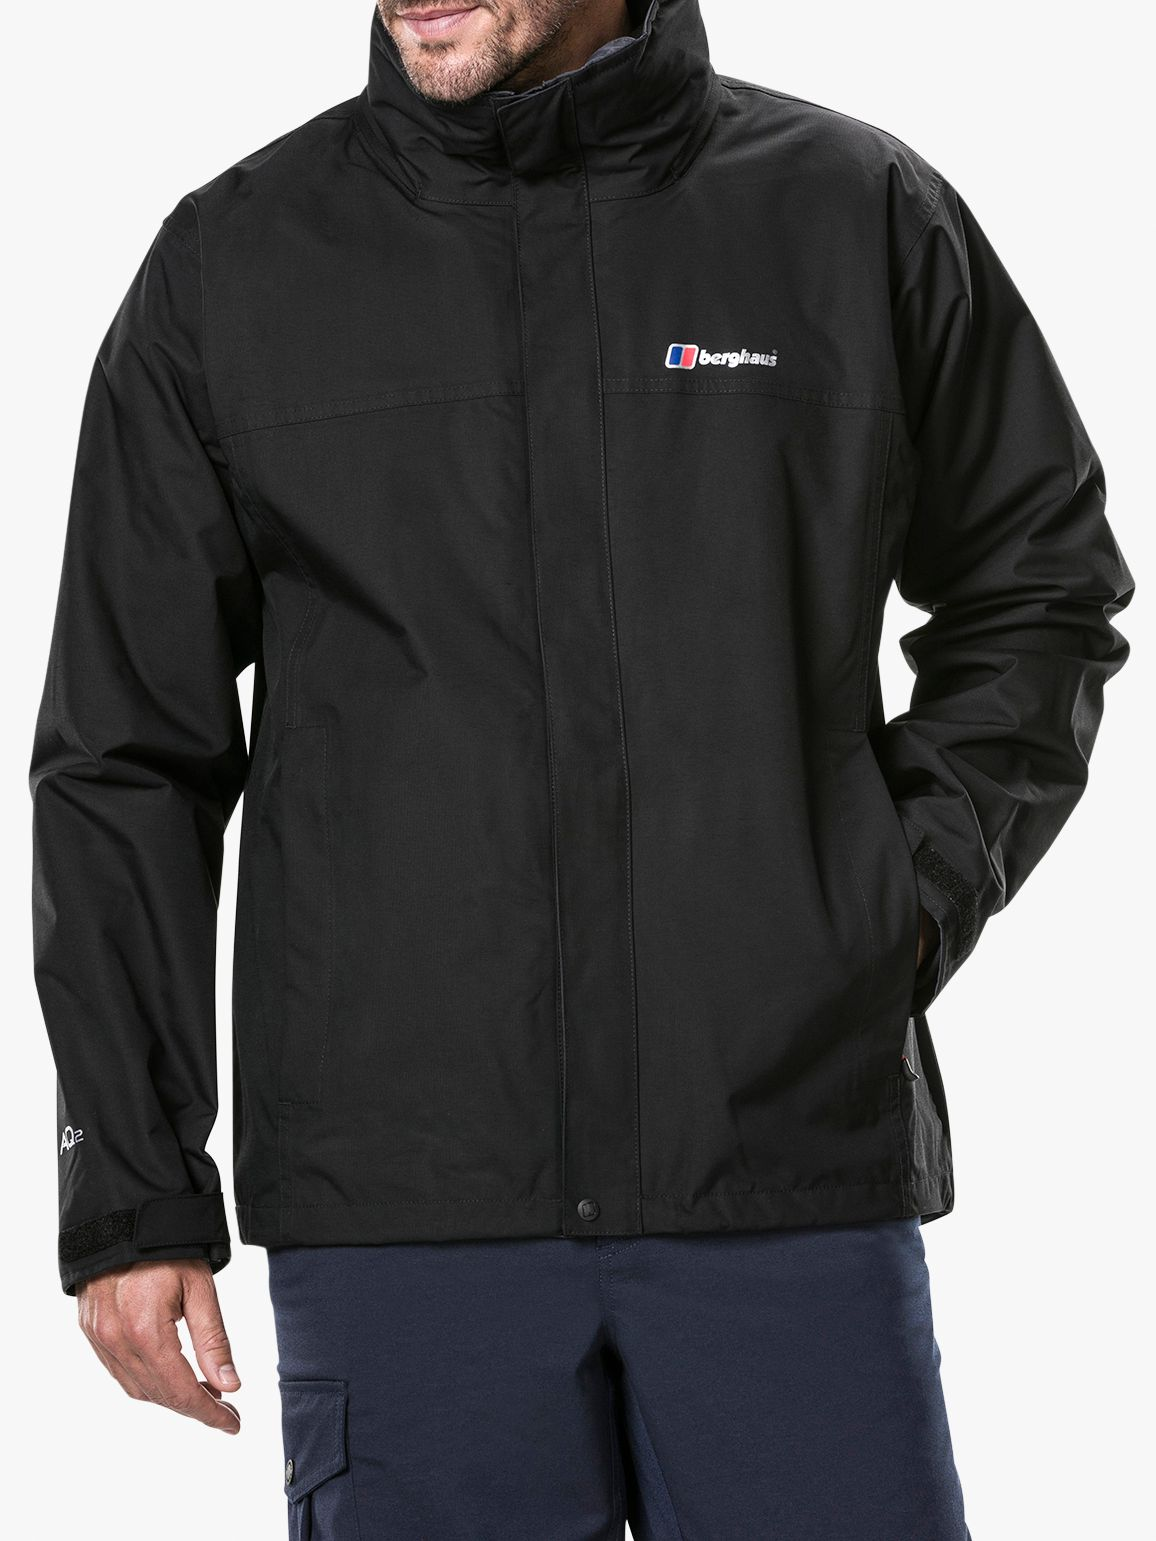 Berghaus Berghaus RG Alpha 3-in-1 Waterproof Men's Jacket, Black